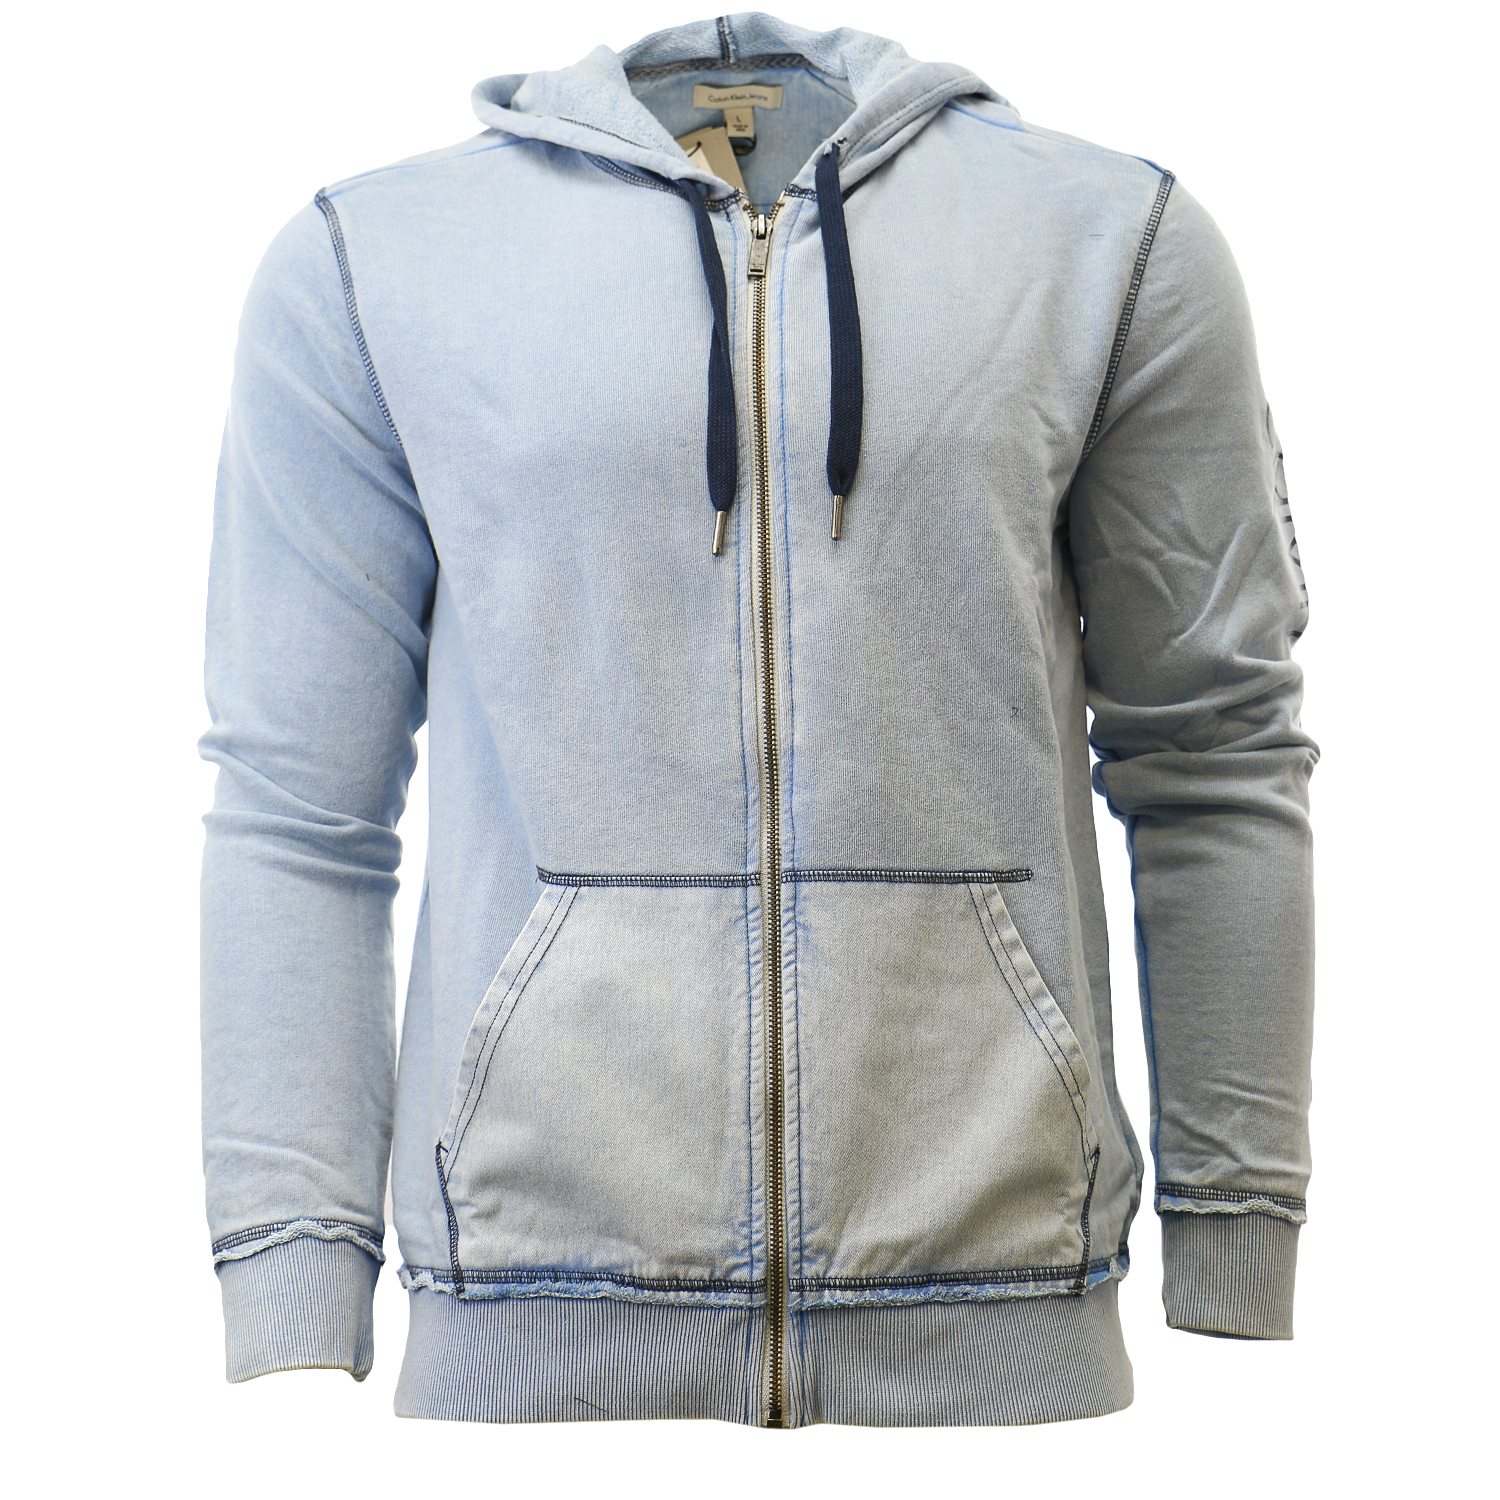 Calvin Klein Washed Full Zip Hoodie Sweat Jacket Hooded Sweatshirt - Mens